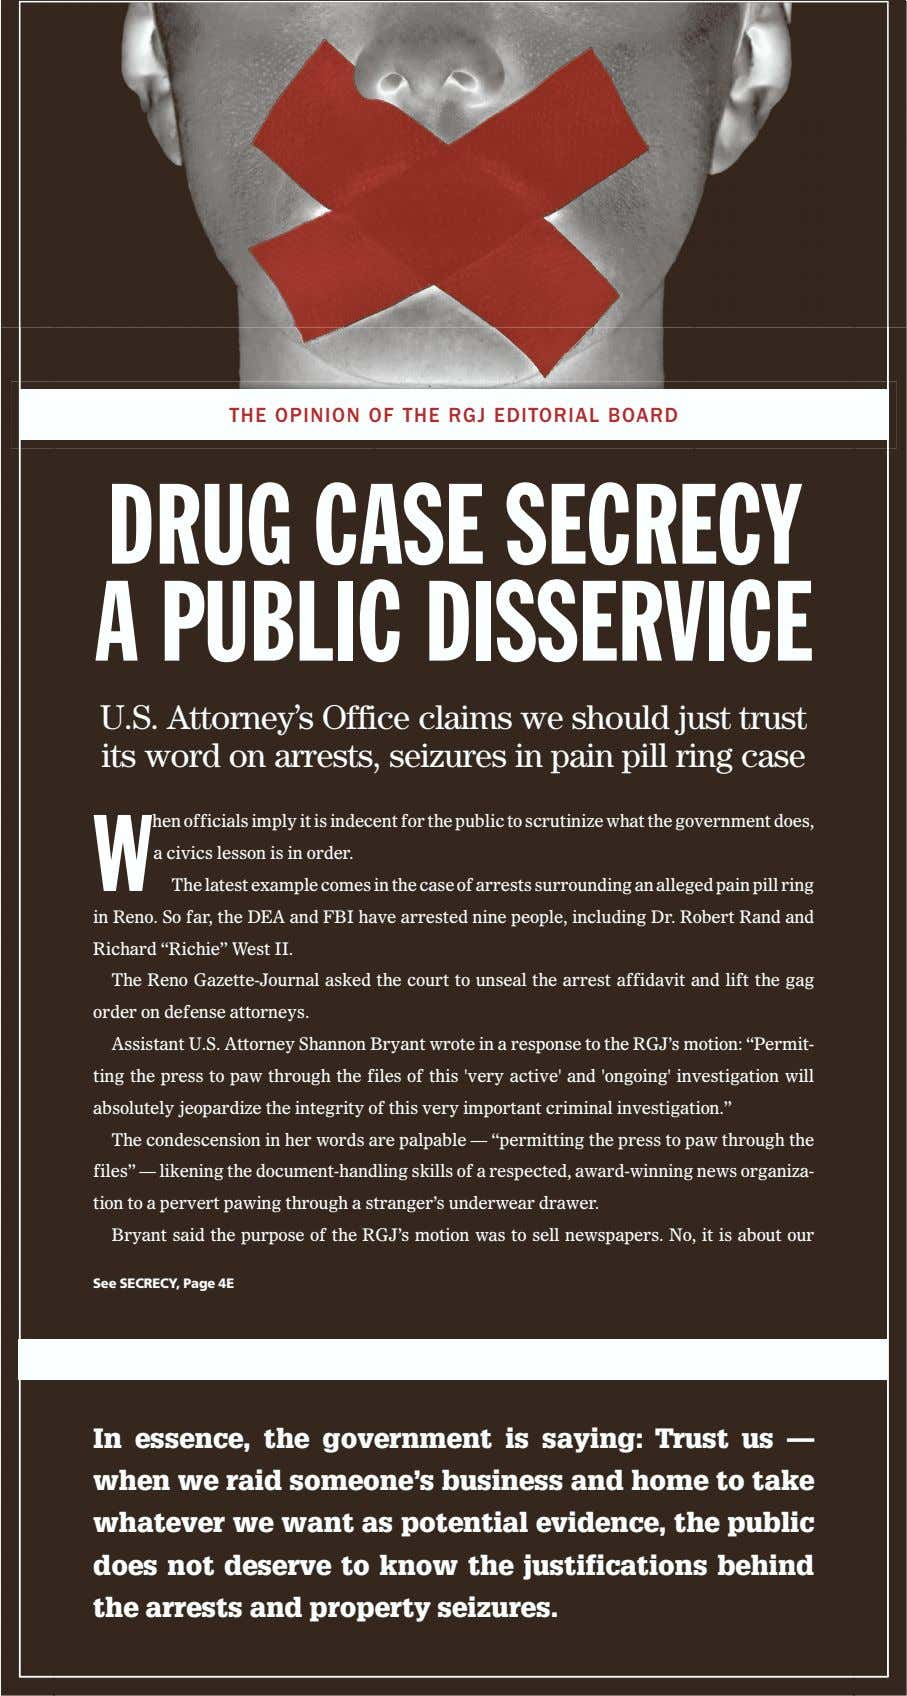 THE OPINION OF THE RGJ EDITORIAL BOARD DRUG CASE SECRECY A PUBLIC DISSERVICE U.S. Attorney's